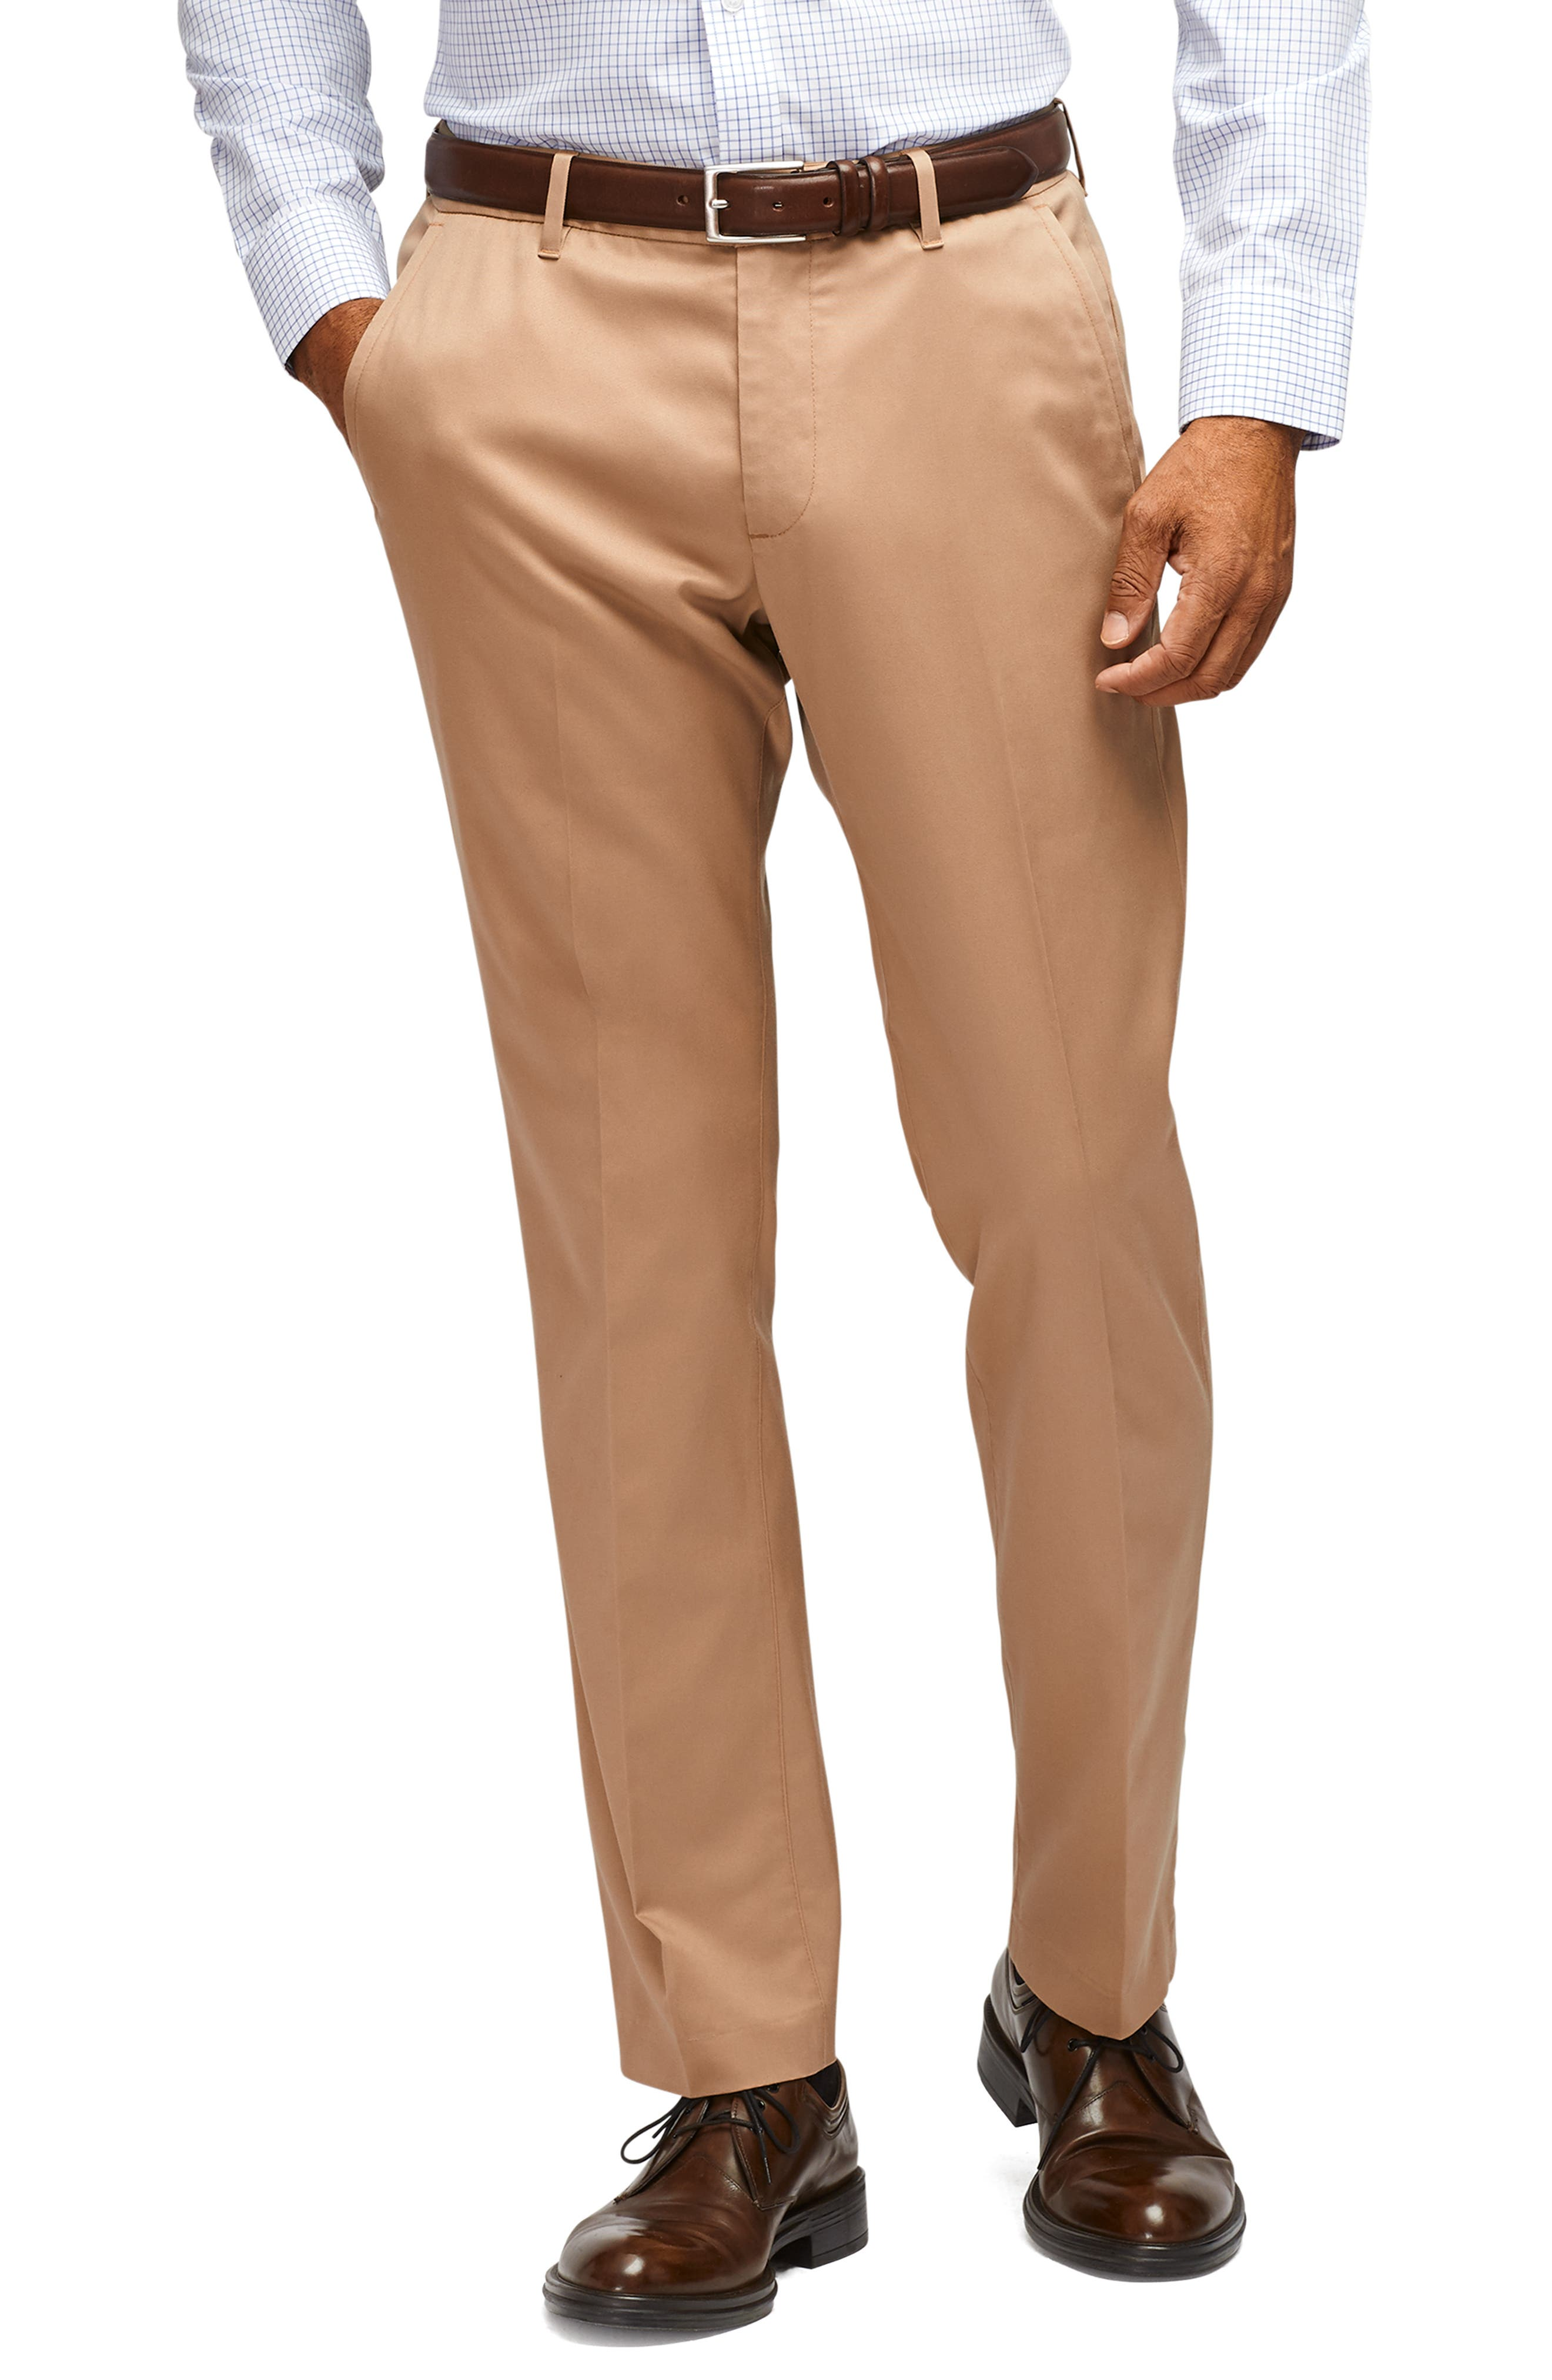 A sharp look for any day of the week, these flat-front pants are made from soft, easy-care stretch fabric and cut for a trim (but not tight) fit. Style Name: Bonobos Stretch Weekday Warrior Slim Fit Dress Pants. Style Number: 5647316. Available in stores.